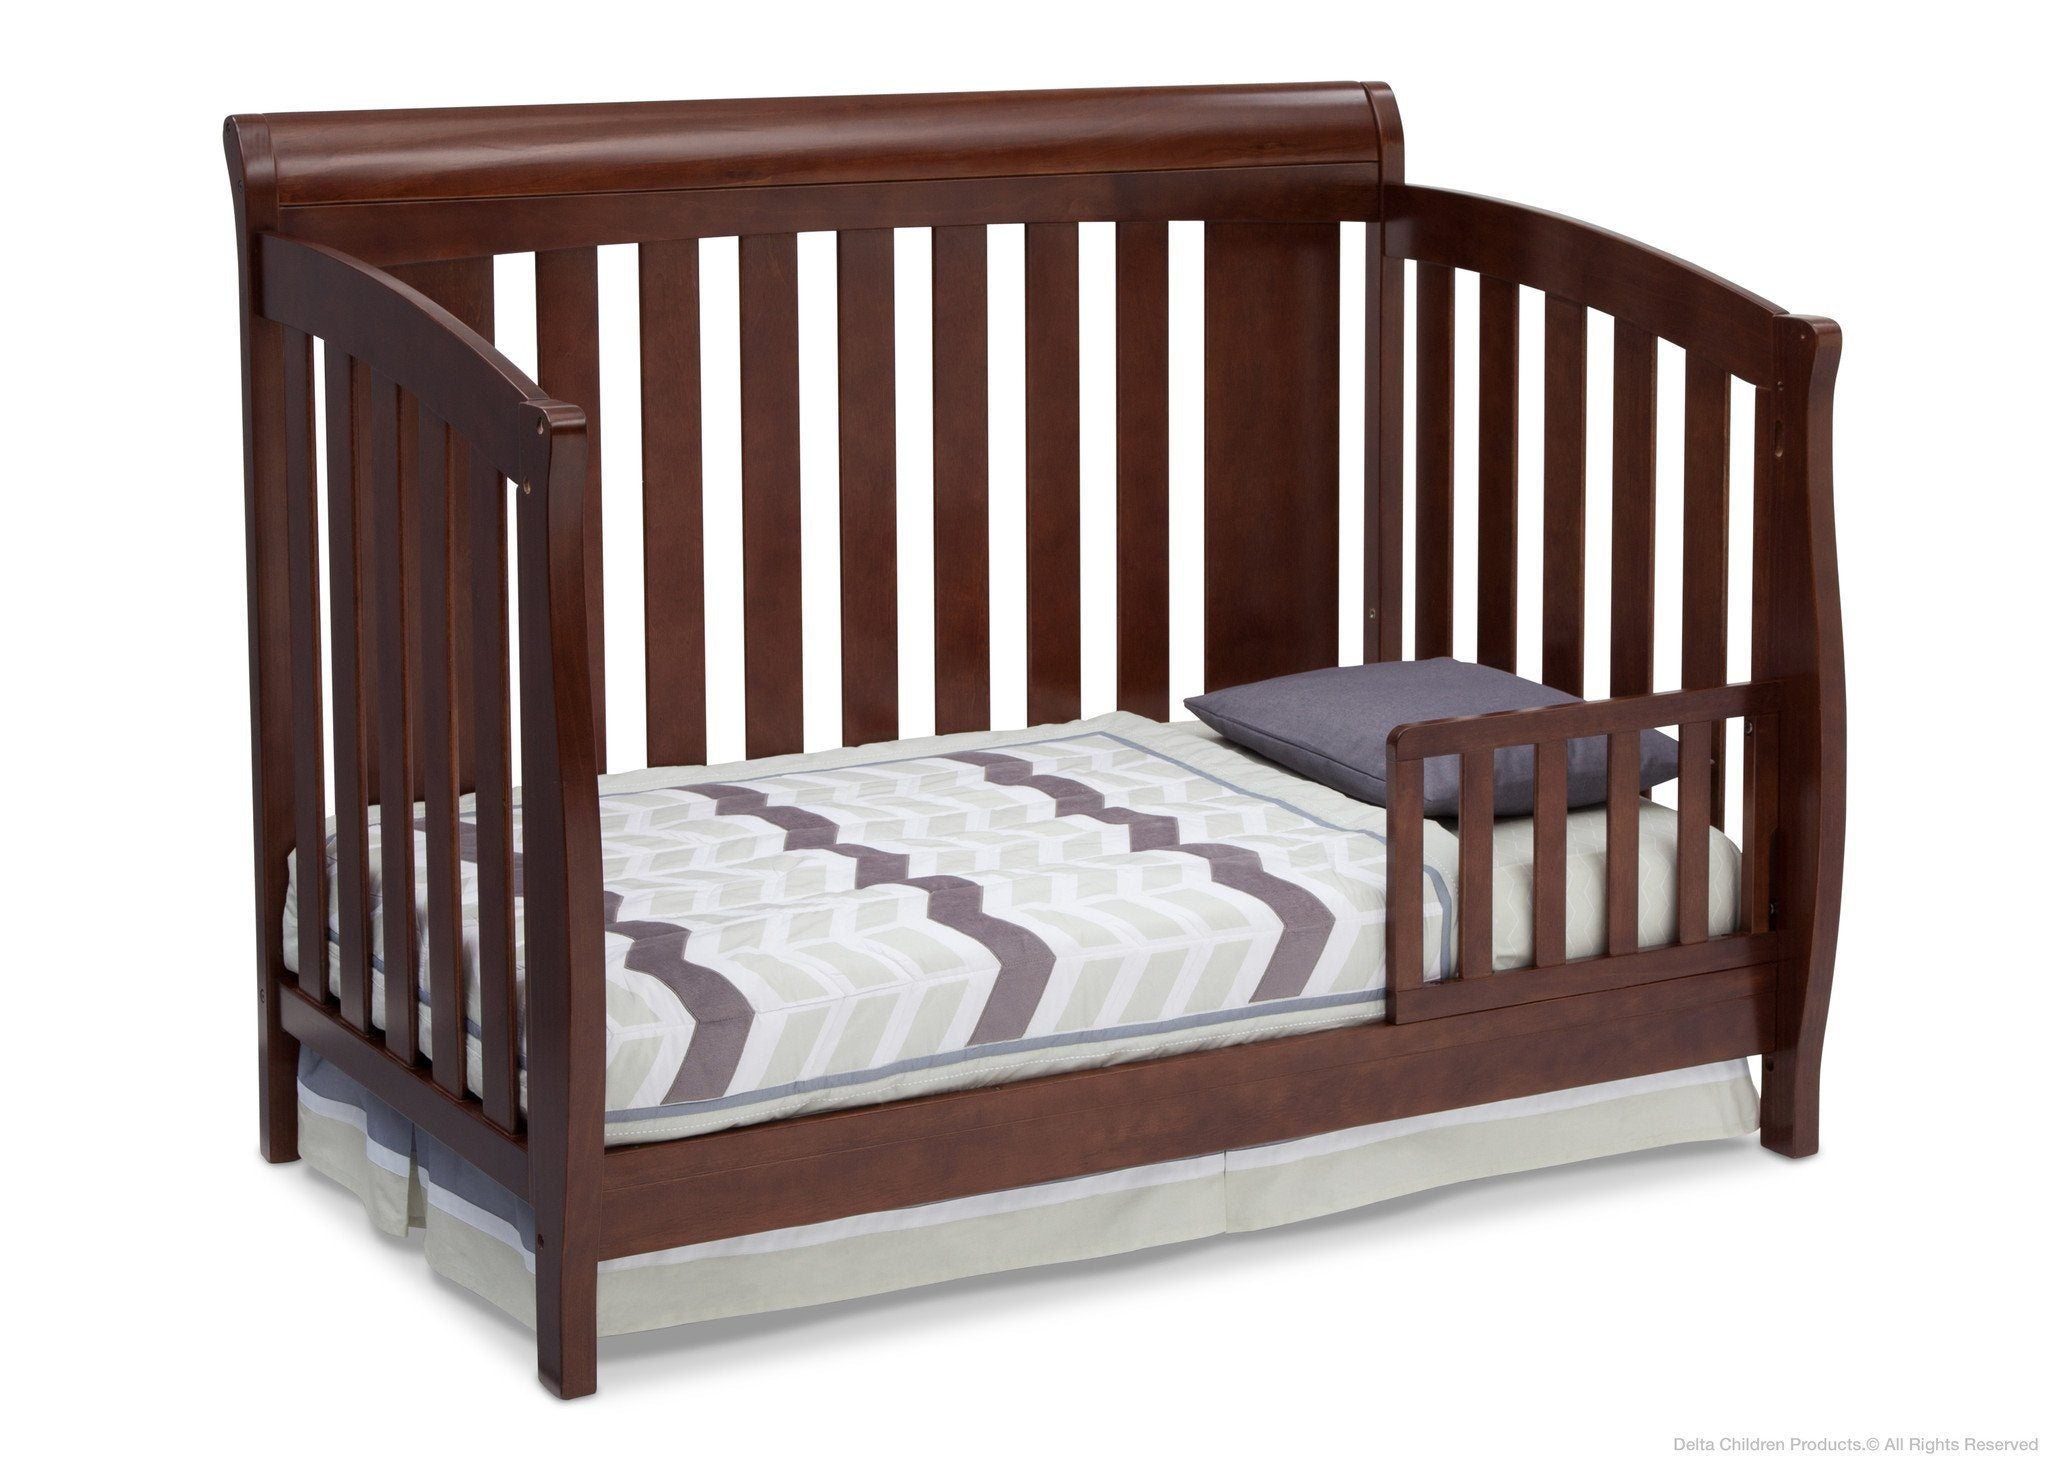 Delta Children Chocolate (204) Clermont 4-in-1 Crib, Toddler Bed Conversion b3b